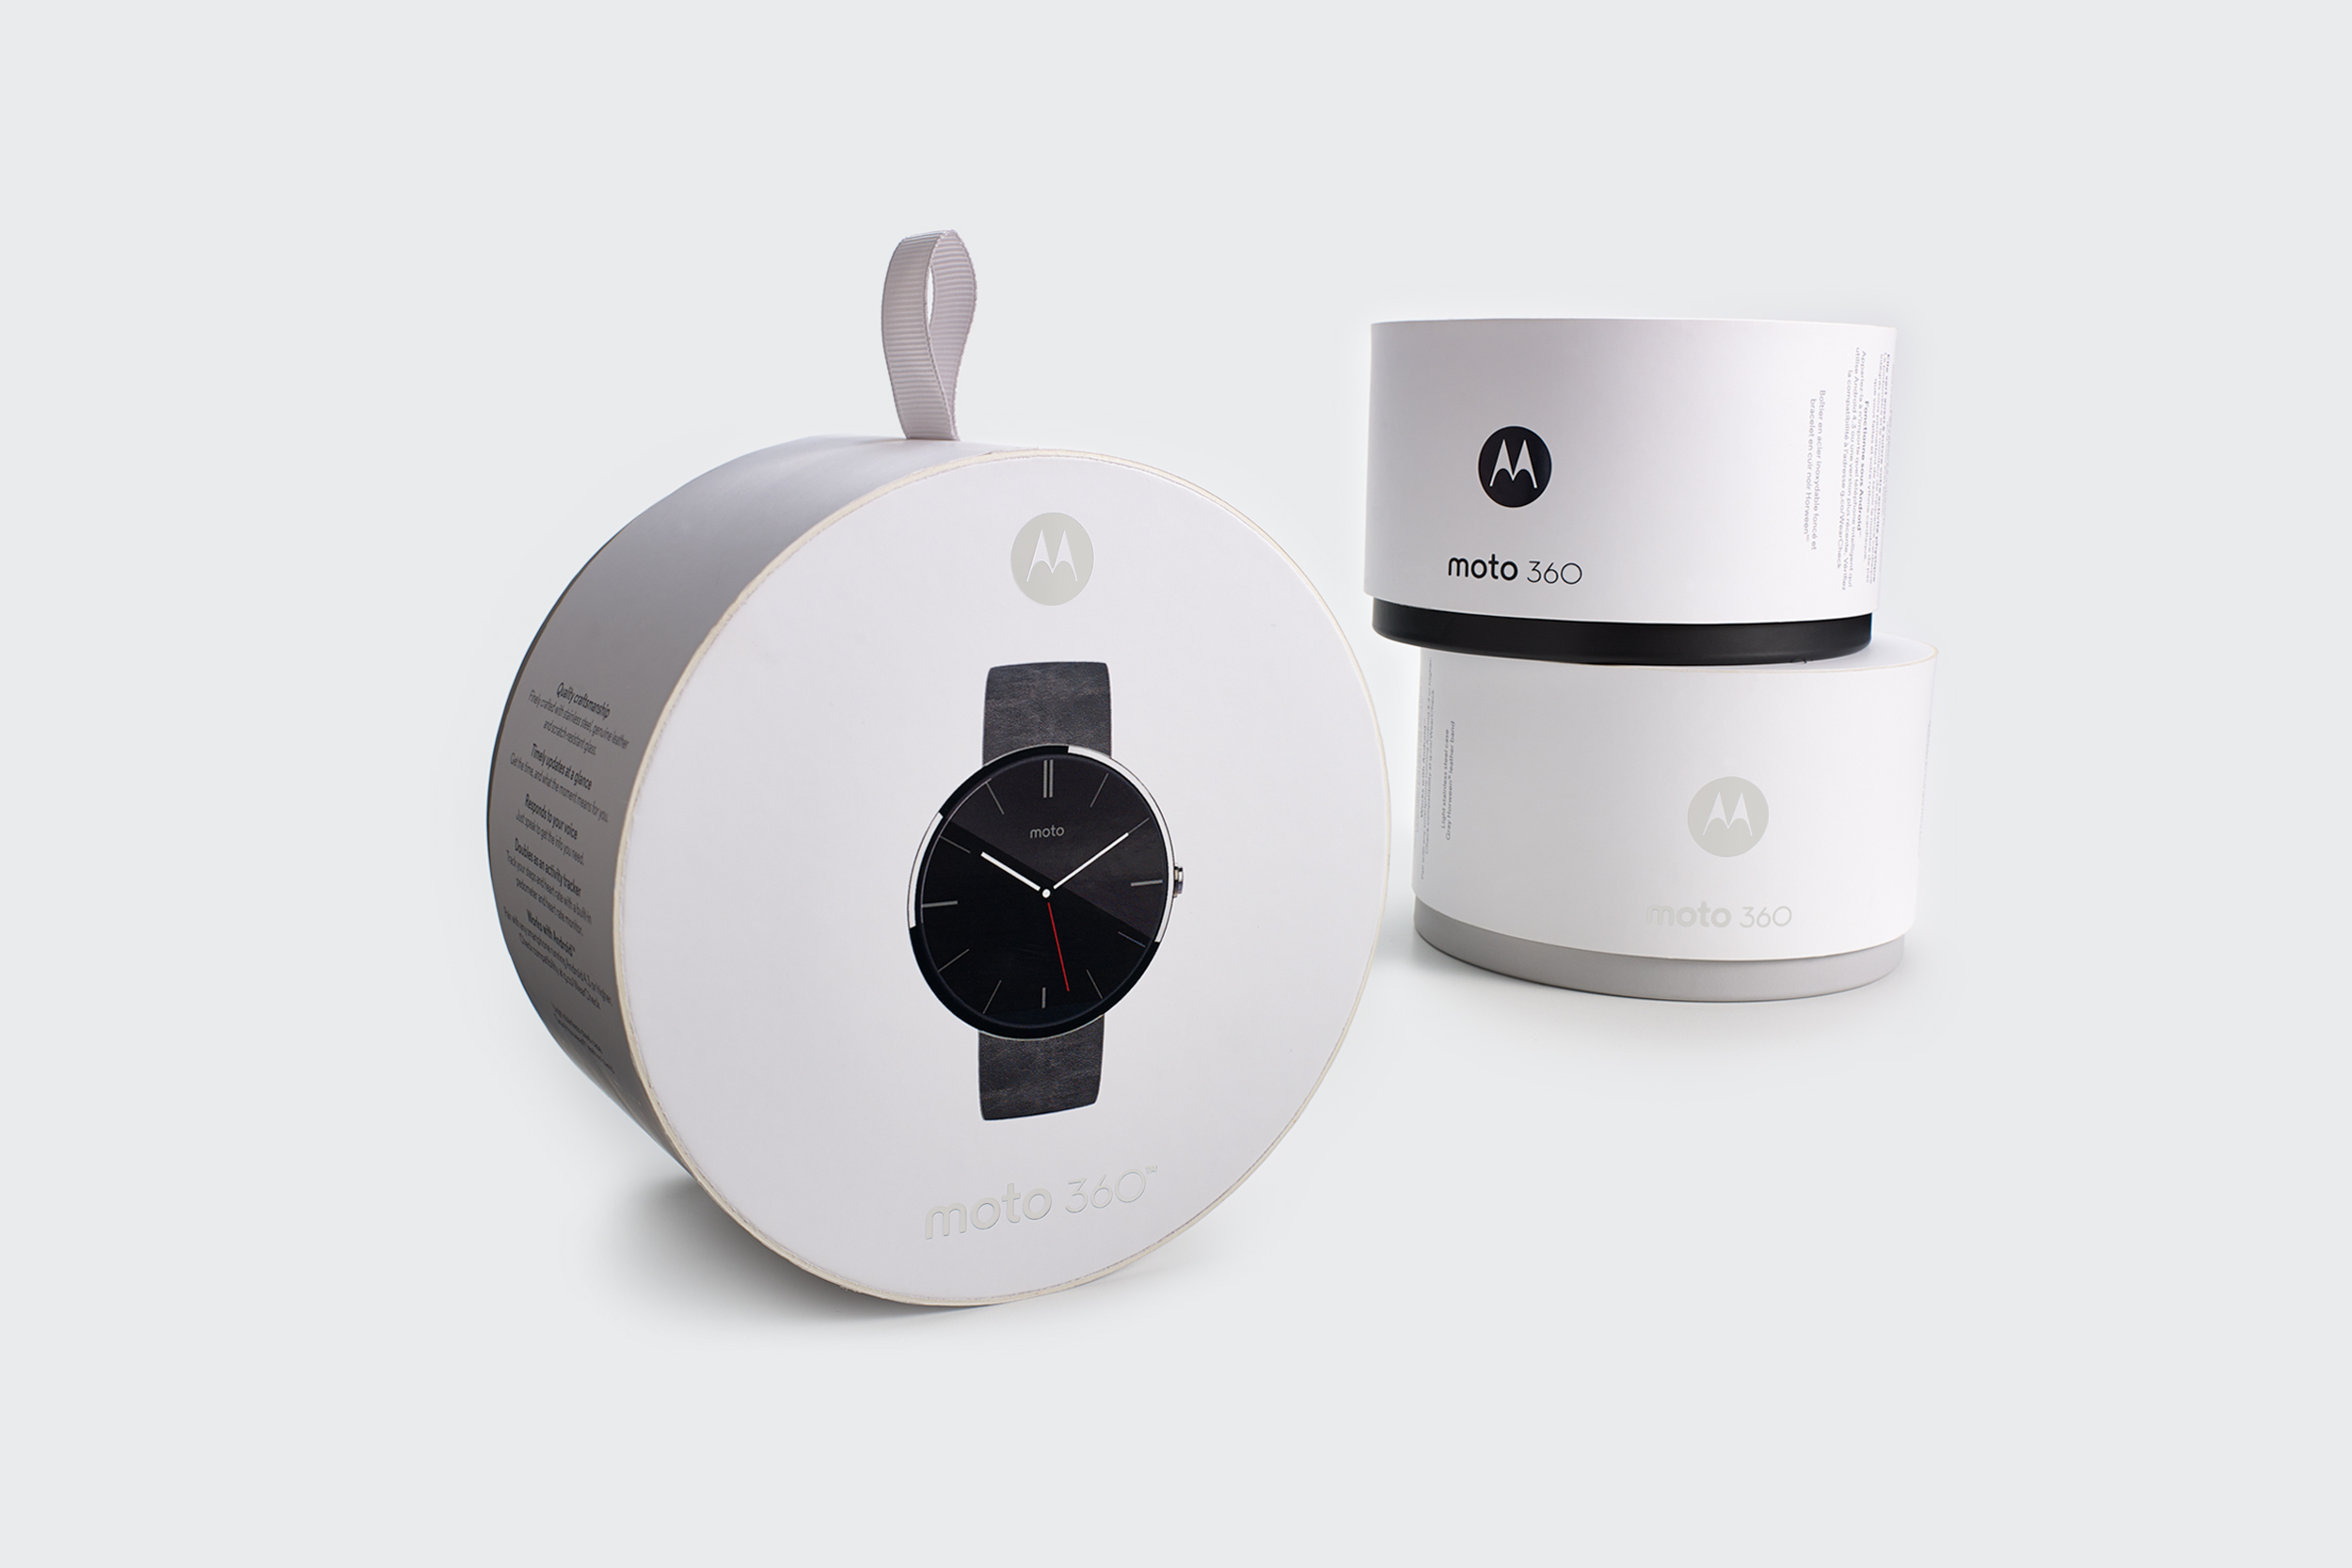 Motorola Moto 360 1st Gen  |  Packaging Structure Design